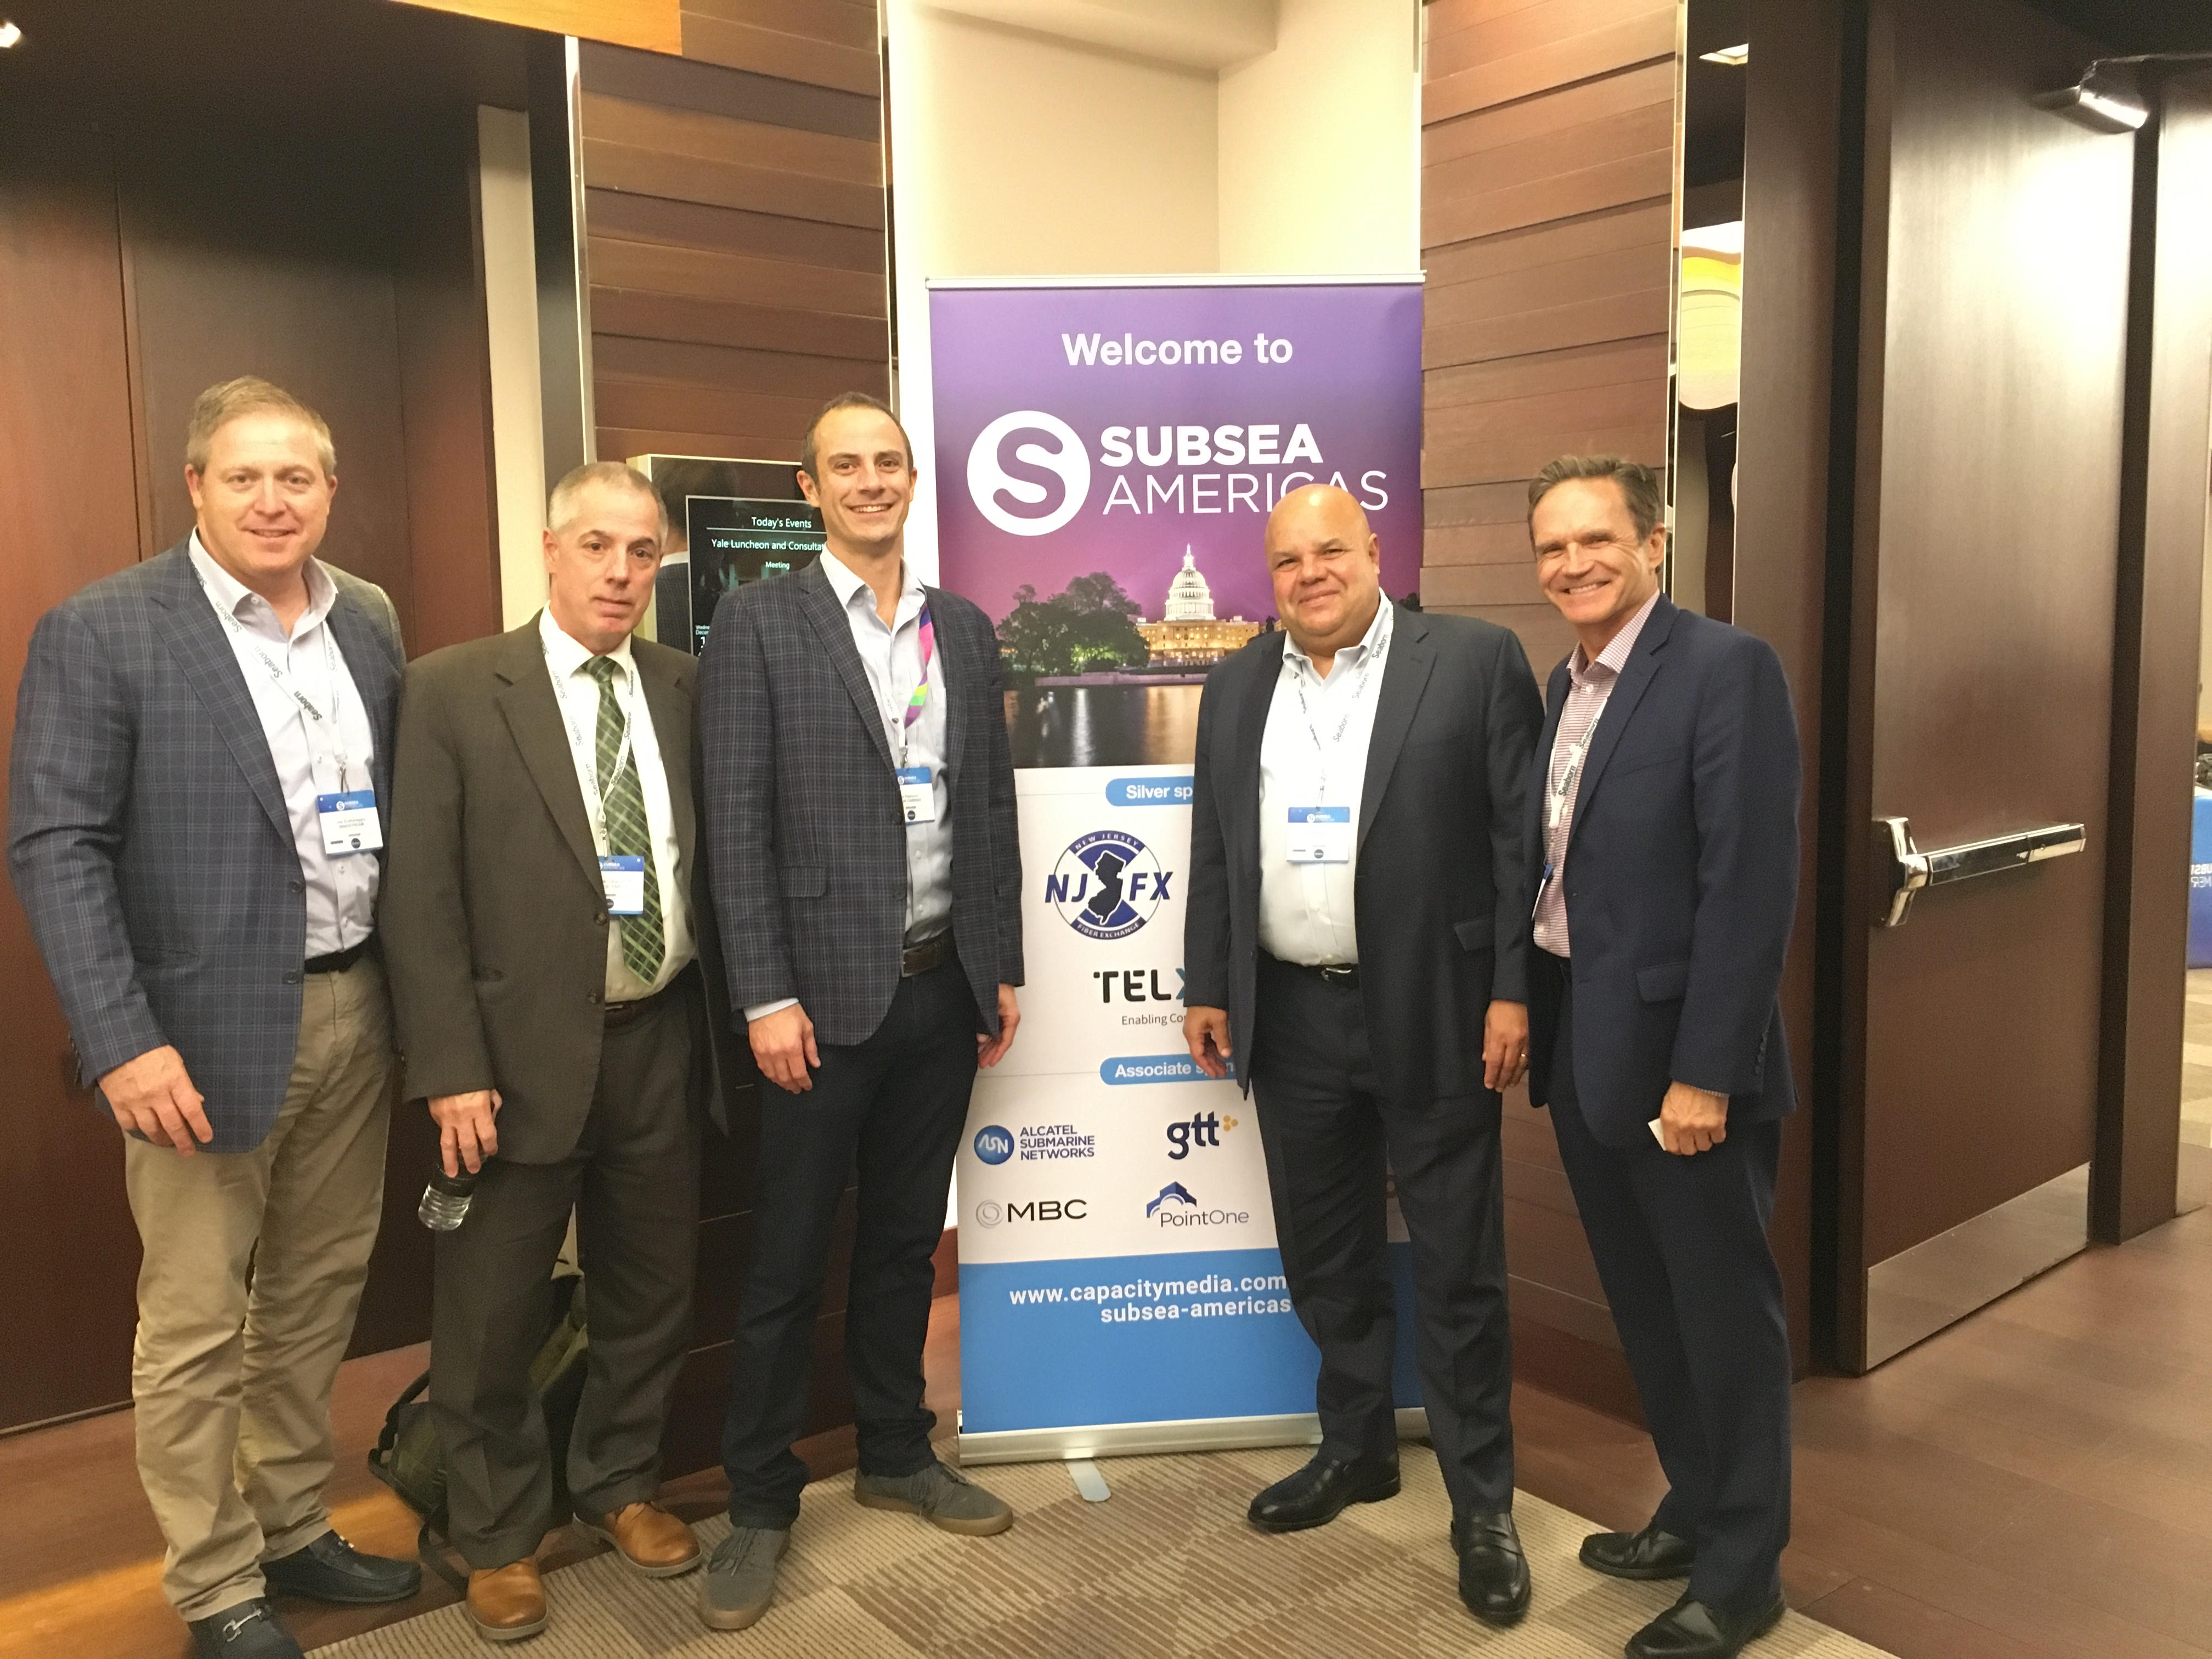 NJFX at Subsea Americas